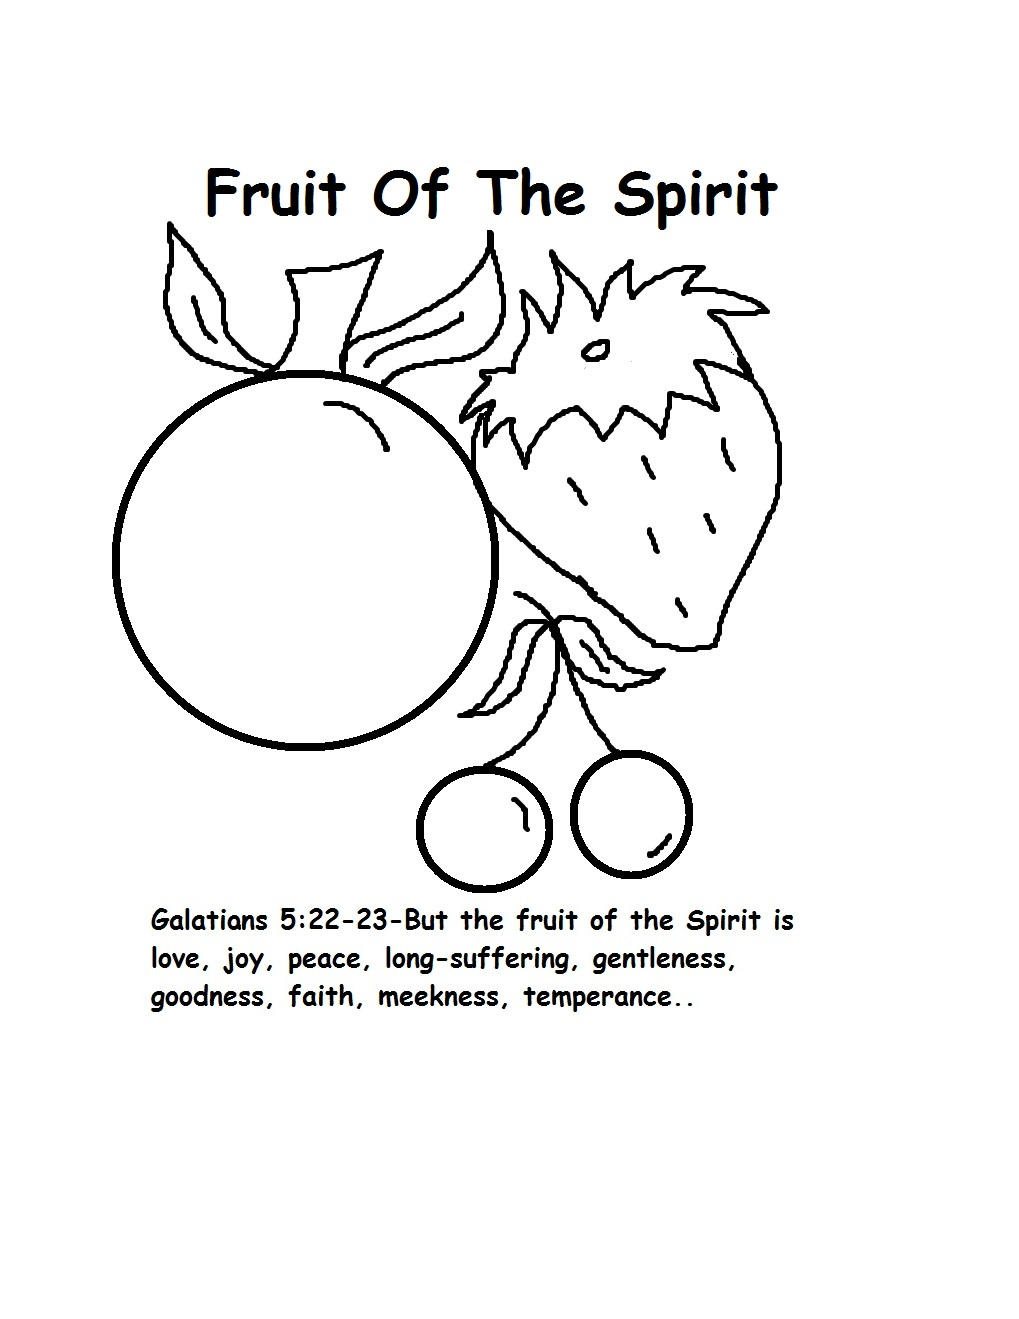 Fruit of the spirit glitter paper craft for Fruit of the spirit goodness craft